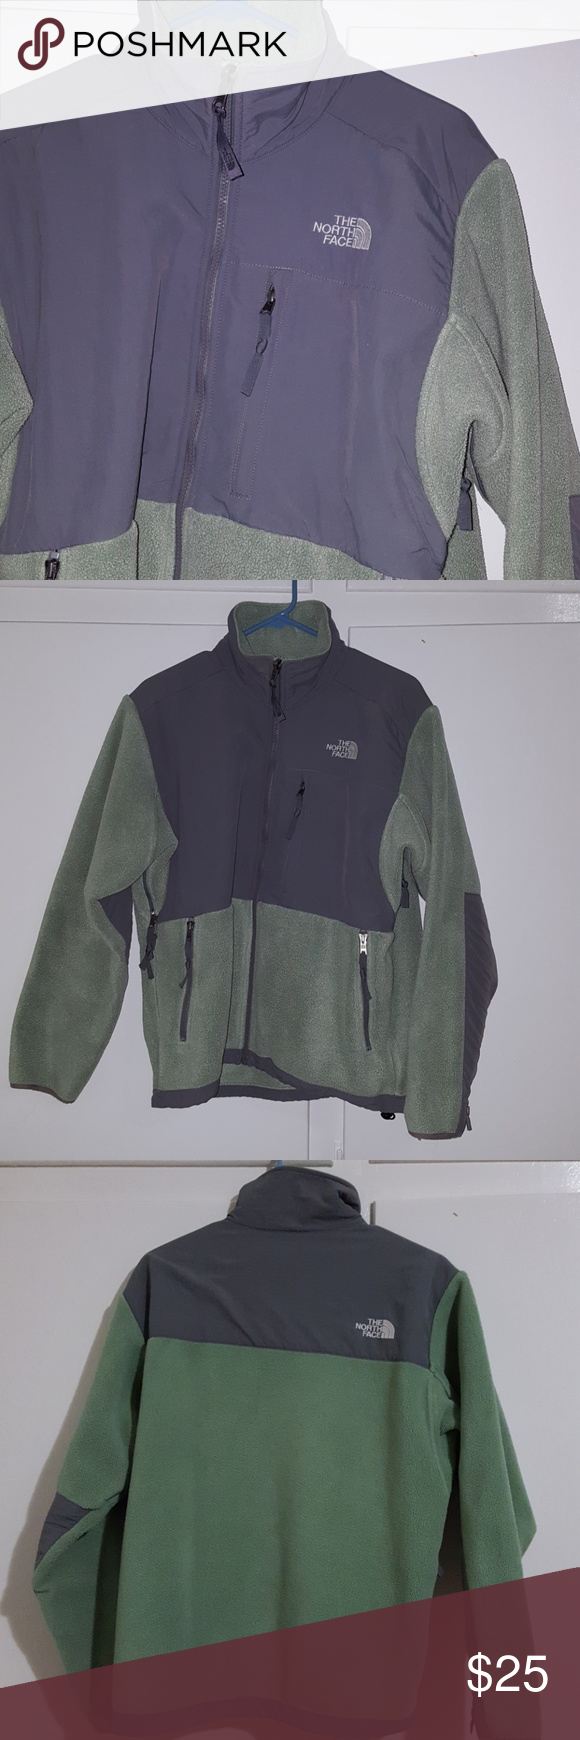 The North Face Denali Jacket Clothes Design Jackets The North Face [ 1740 x 580 Pixel ]